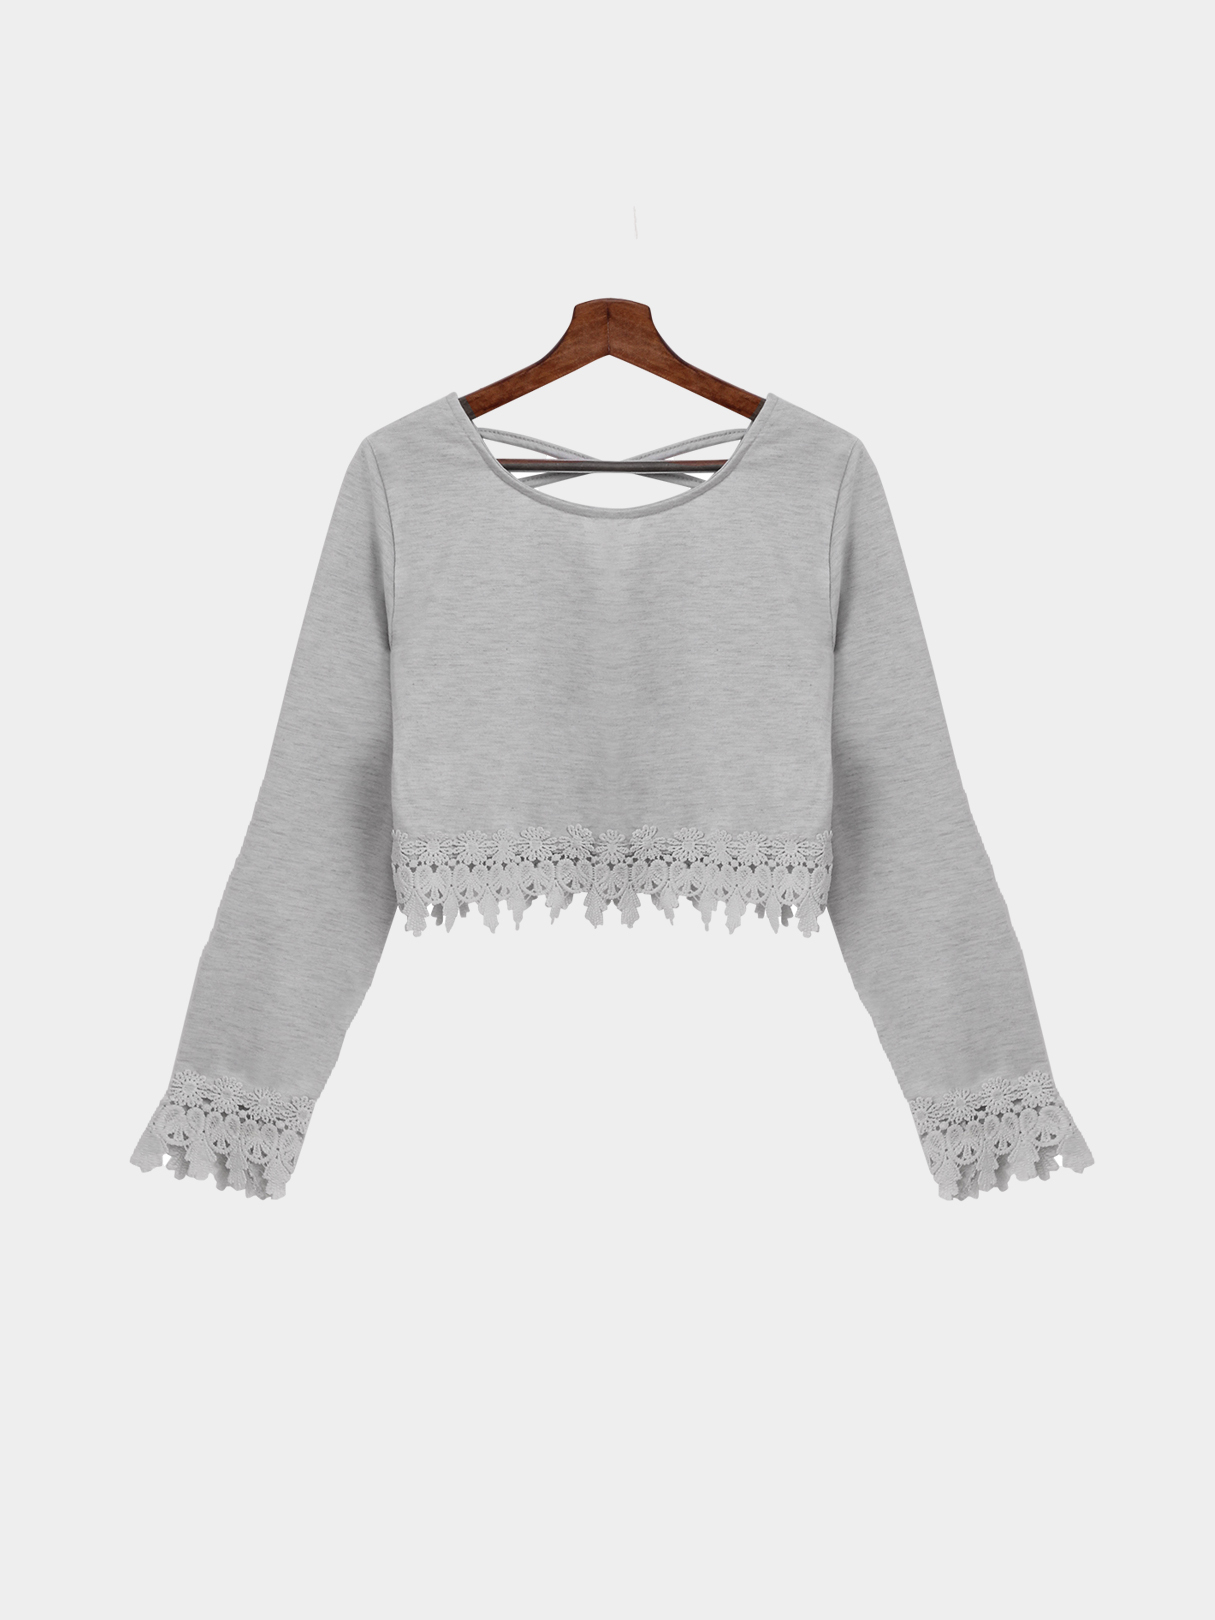 Light Gray Lace Crop T-Shirt  With Cross Back Details